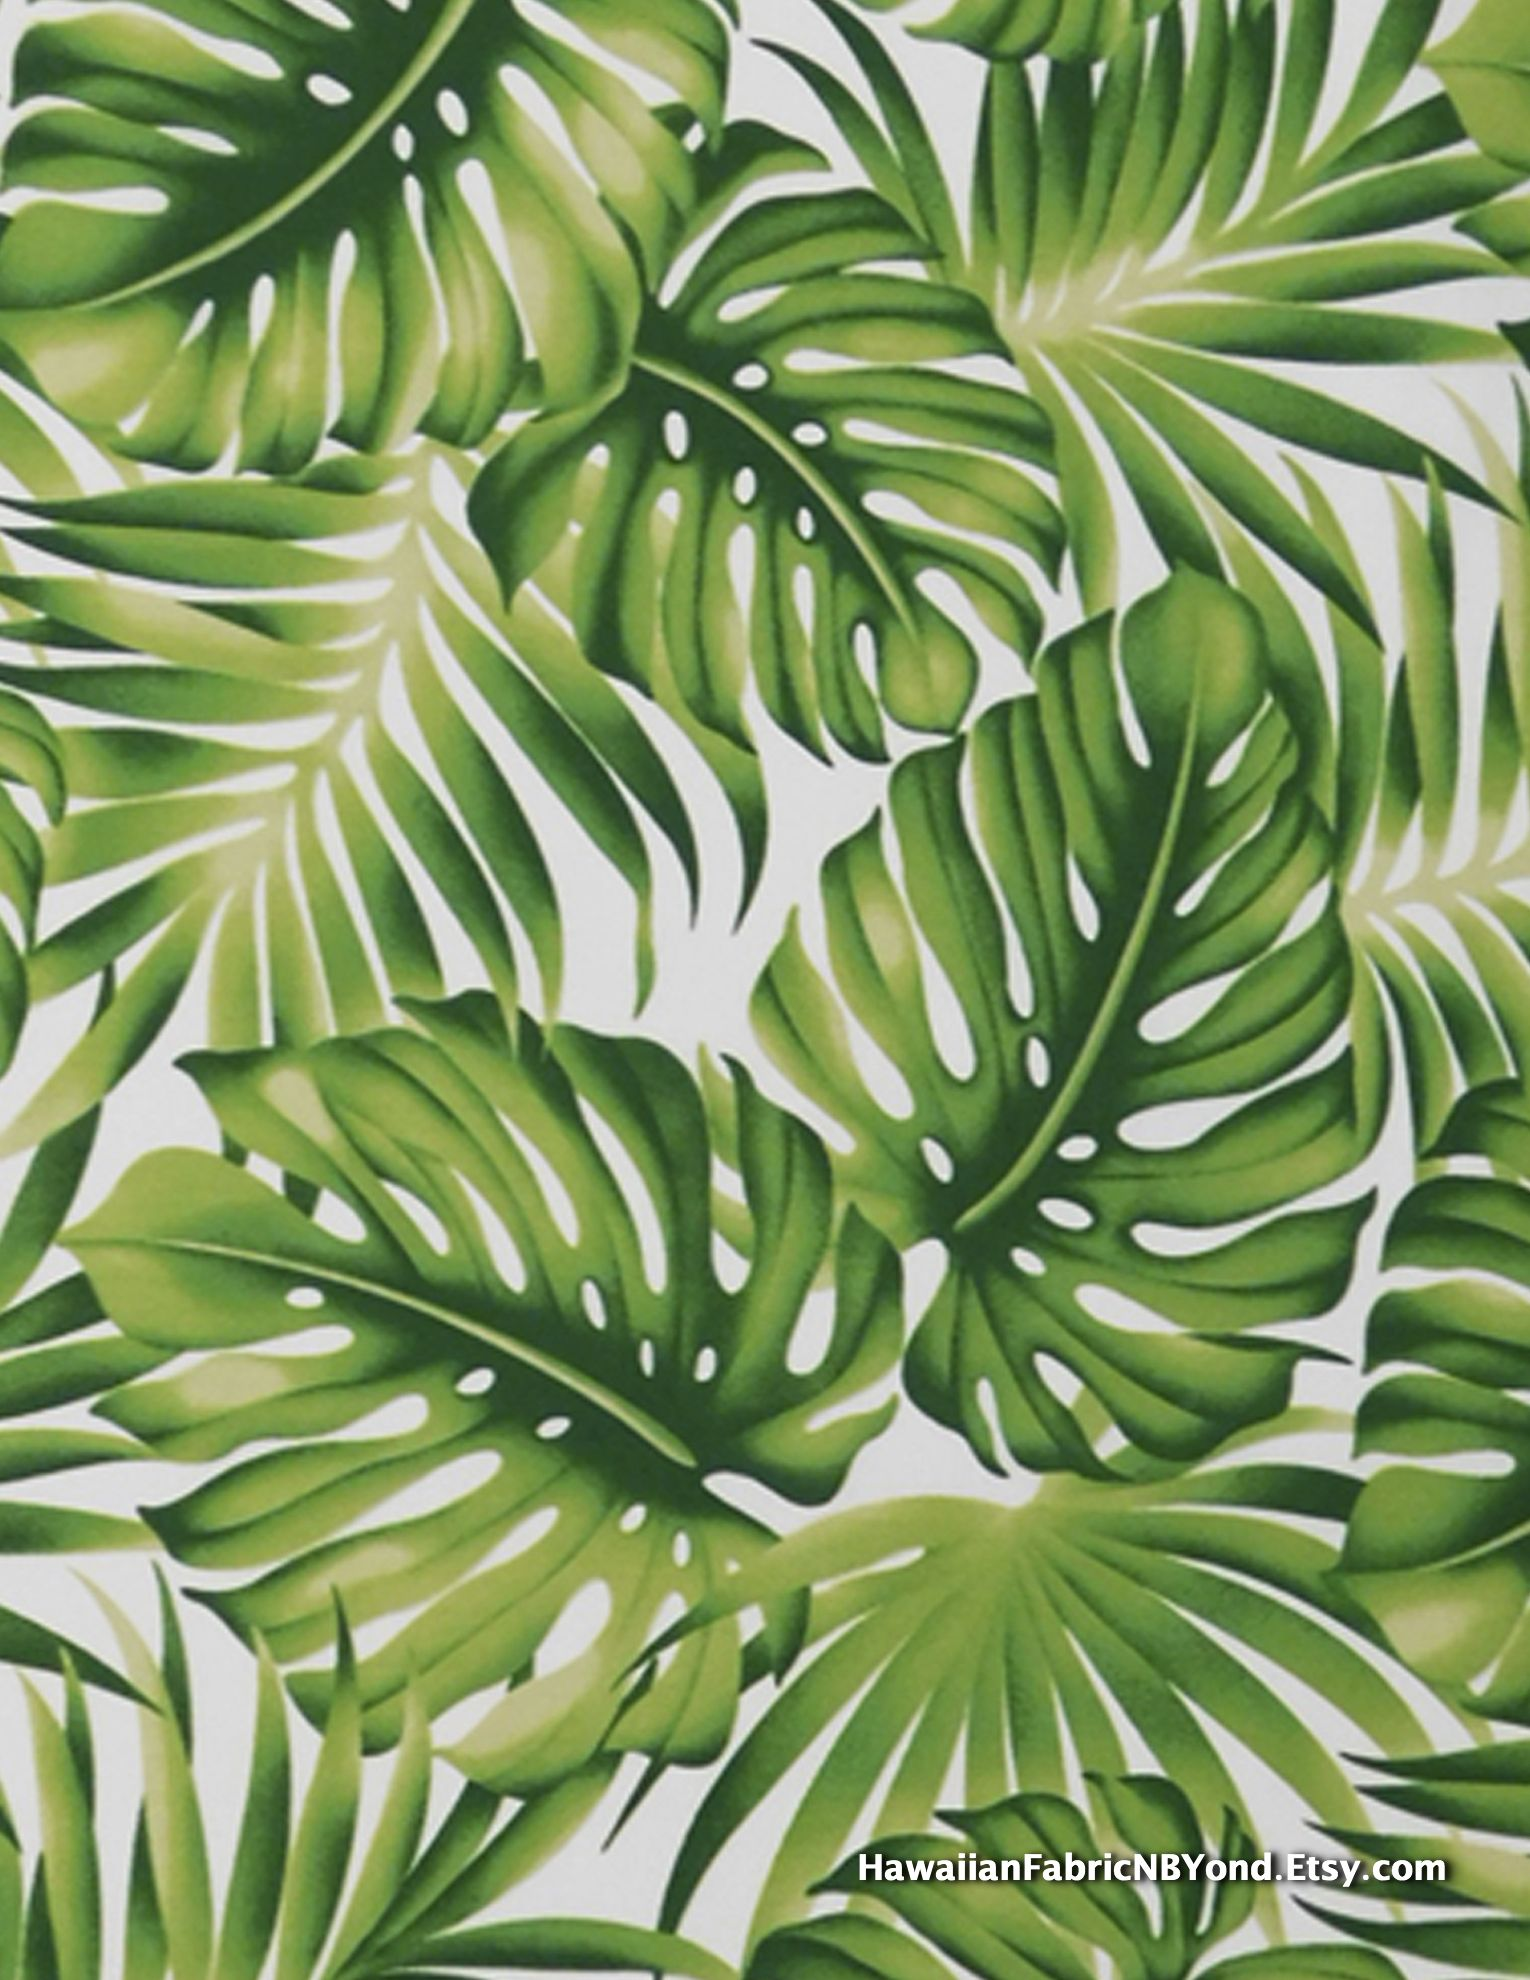 Tropical Fabric Monstera Leaves And Palm Fronds By Hawaiianfabricnbyond A Shop At Etsy Com Tropical Art Print Tropical Art Leaf Art Image provided by getty images. pinterest